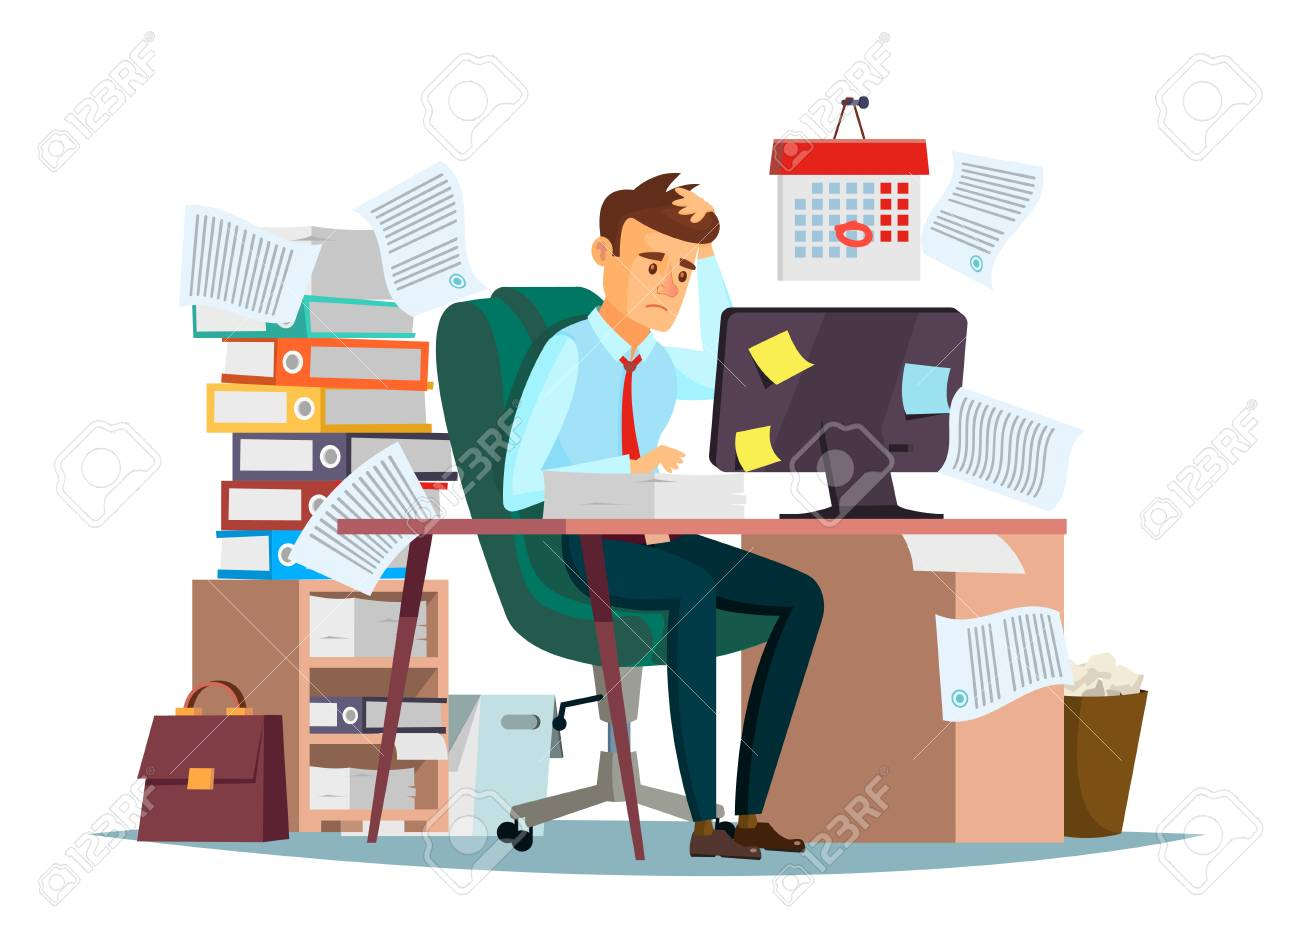 Manager sitting at computer desk with stack of documents in mess and deadline tasks sticky notes holding hand on head flat cartoon office design - 98144634